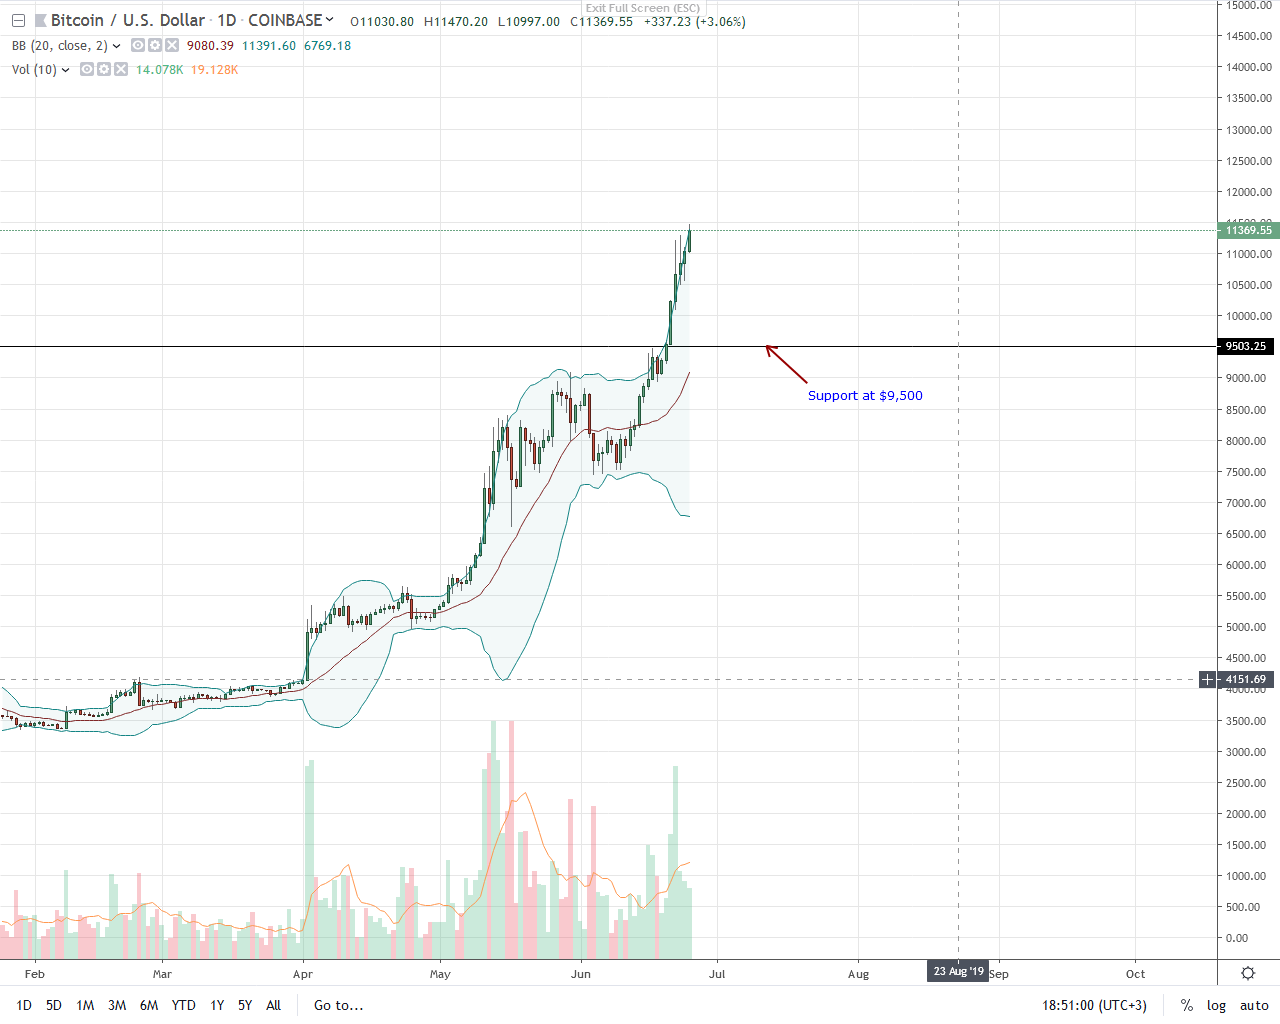 Bitcoin (BTC) At Early 2018 Levels, Investors Prepping For $15,000?